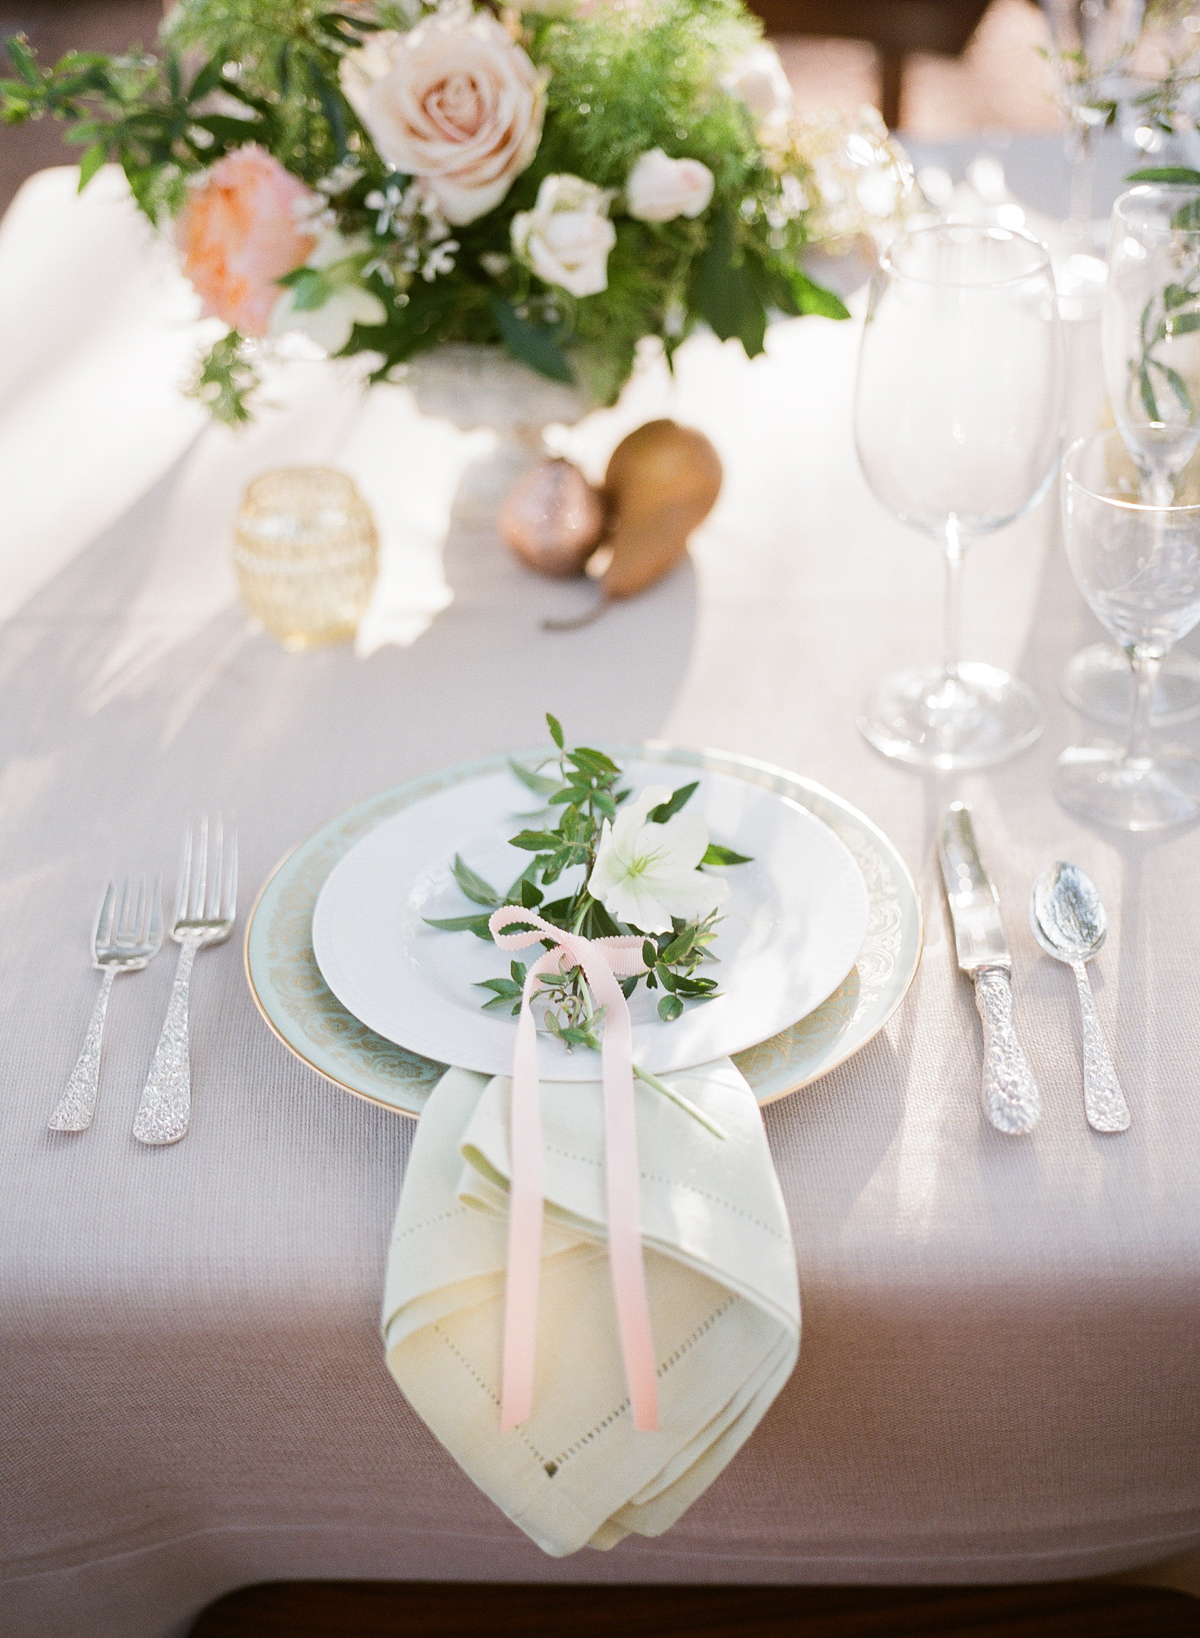 wedding reception napkin folds pointed waterfall fold beneath plate with flowers